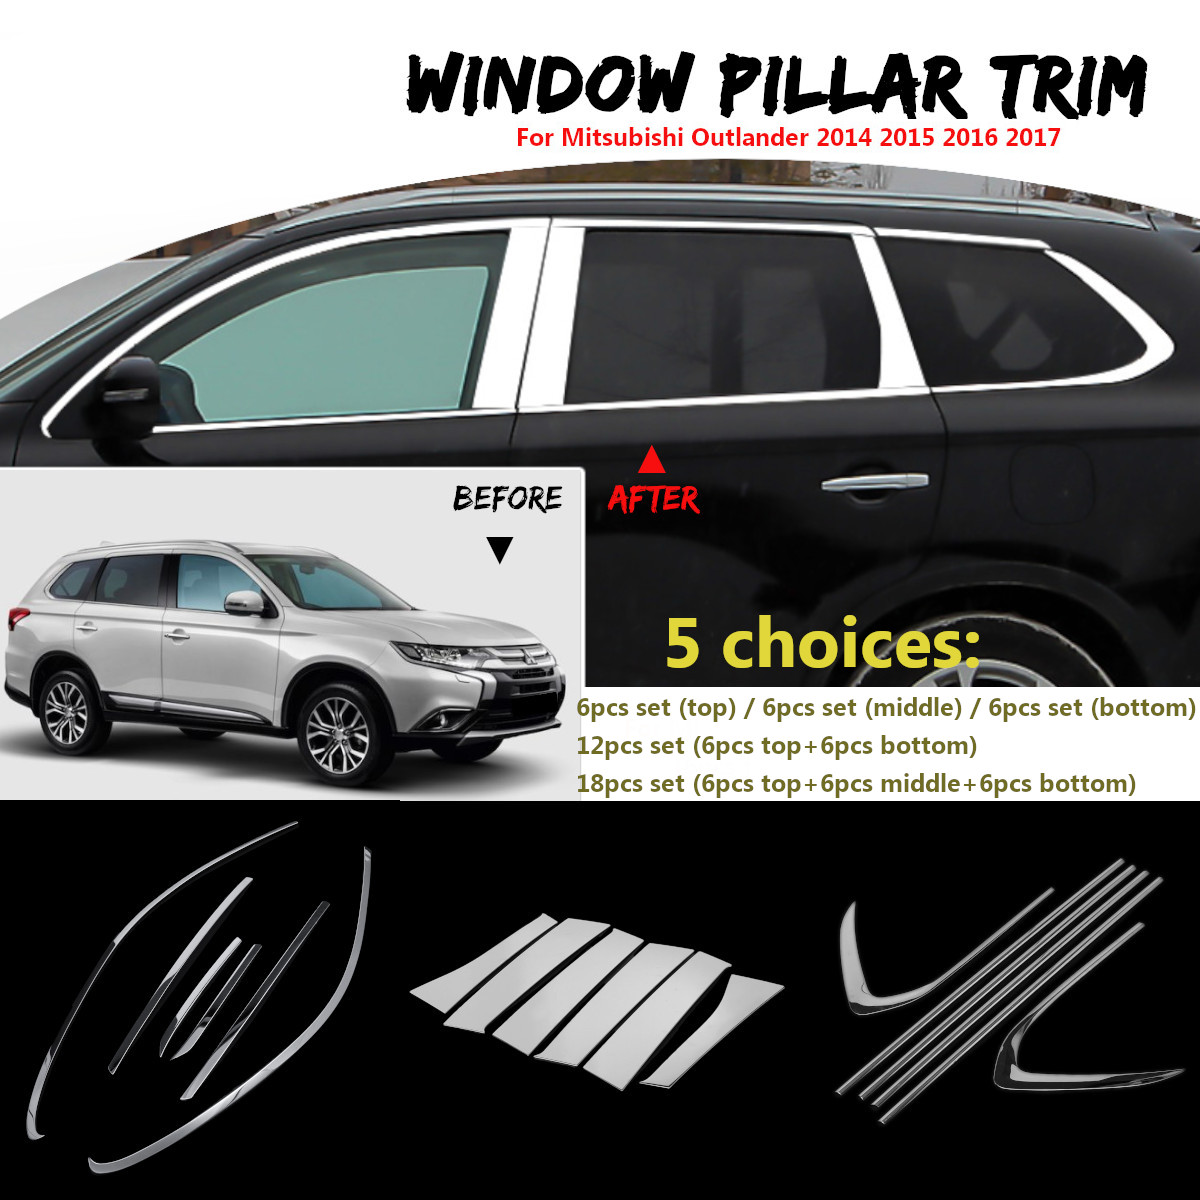 Car Window Pillar Trim Cover Stainless Steel Chrome Decoration for Mitsubishi Outlander 2014 2015 2016 2017 Car Styling 16pcs stainless steel full window trim without center pillar cover 2016 2017 for opel astra k hatchback car styling